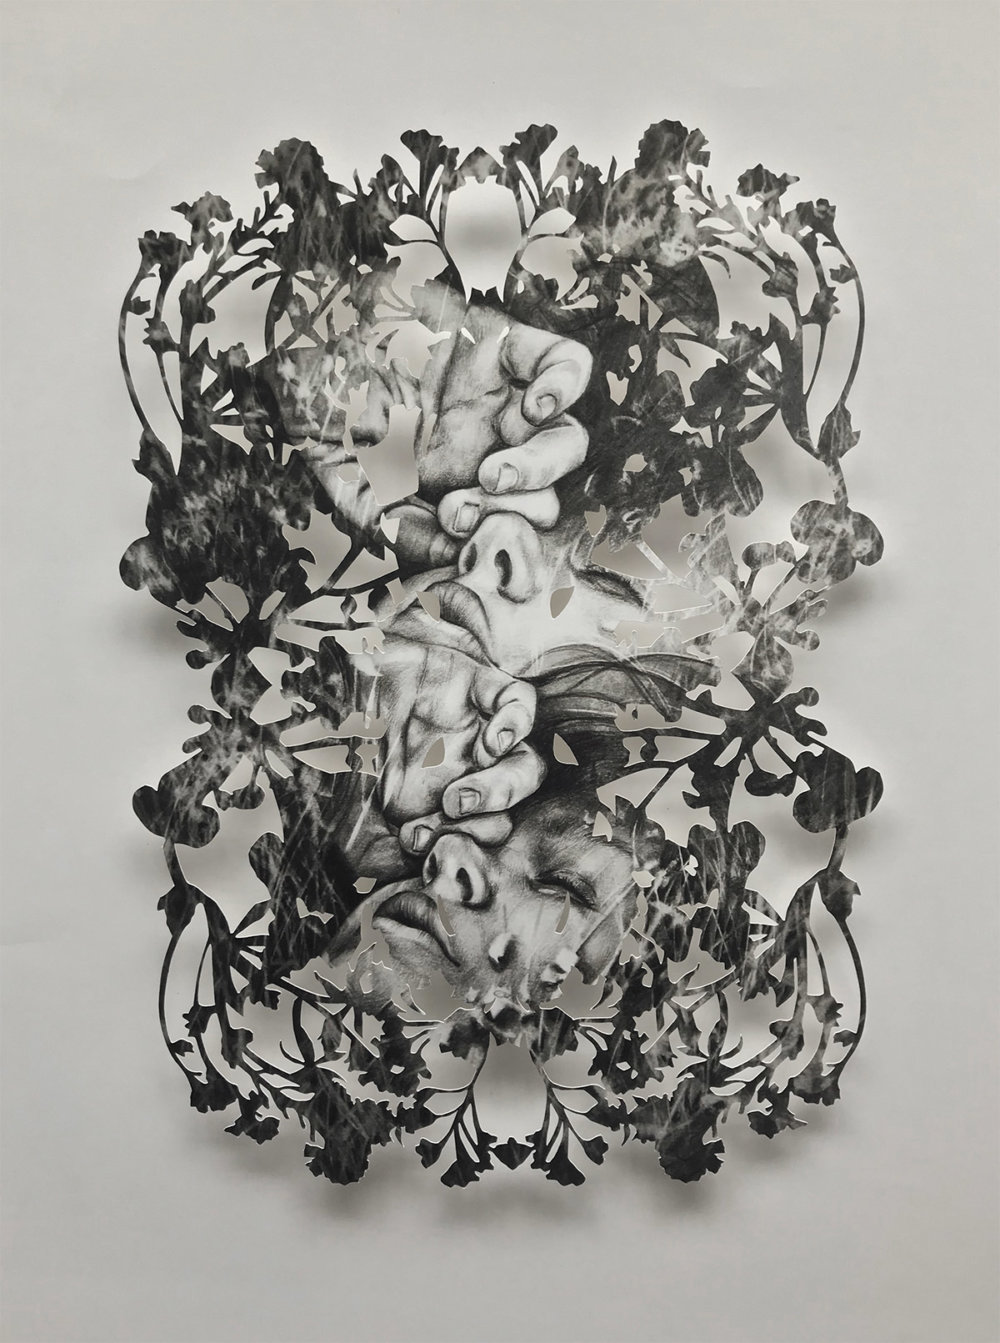 Fragmented Feelings Illustrated Papercut Works By Christine Kim 4